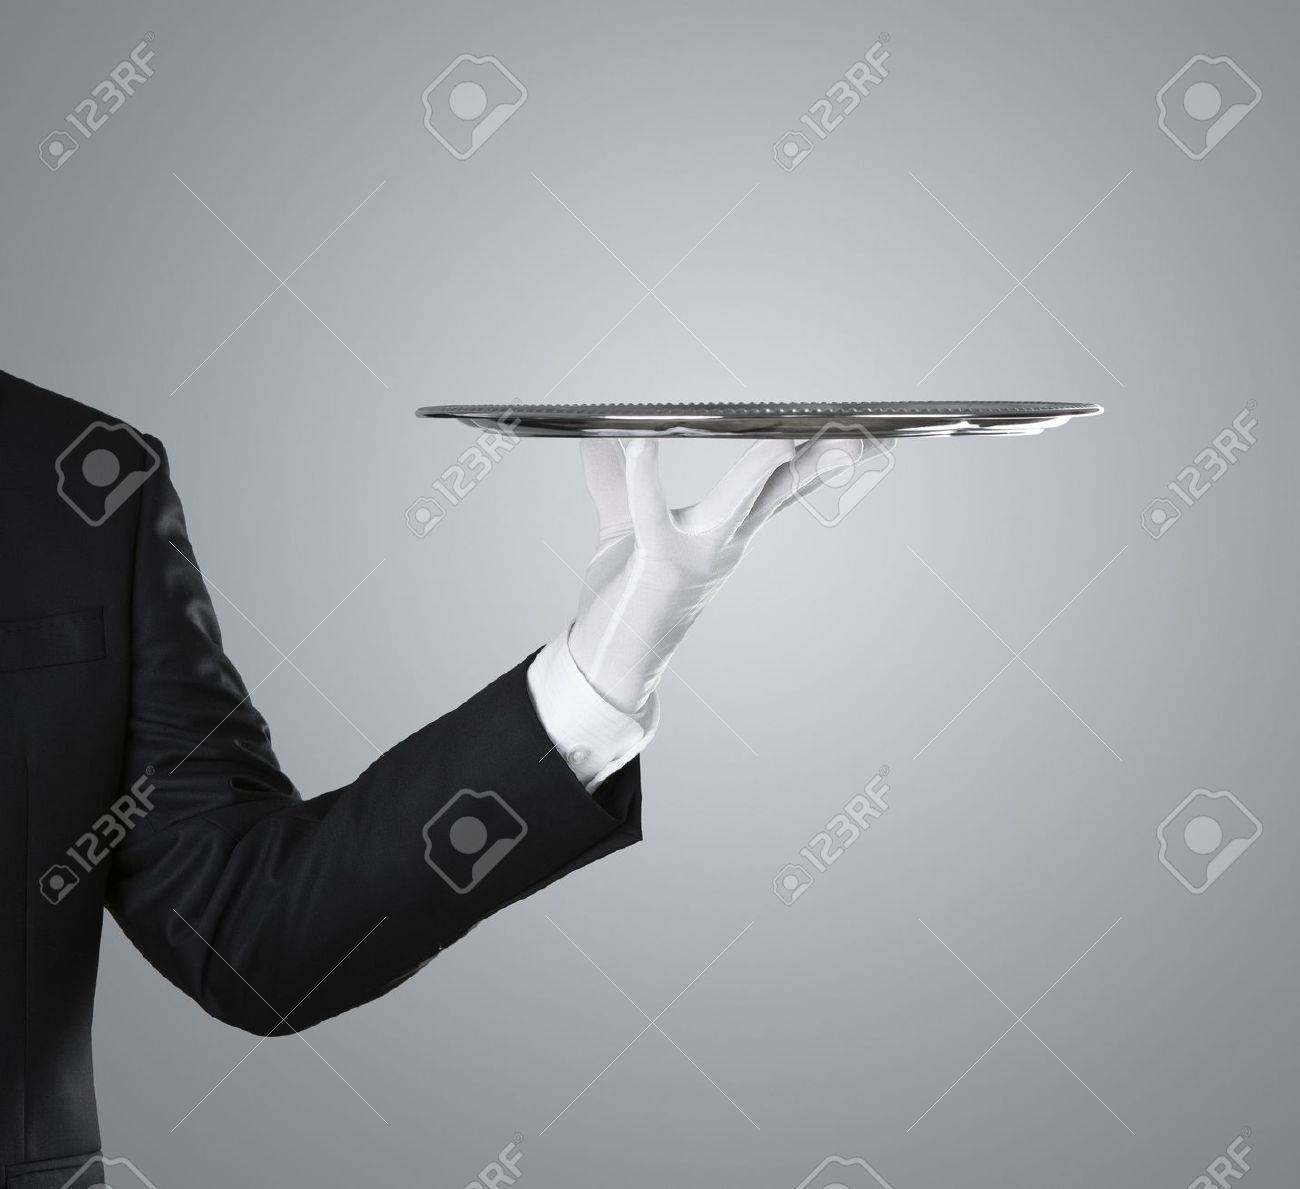 Waiter holding empty silver tray over gray background with copy space - 15437576